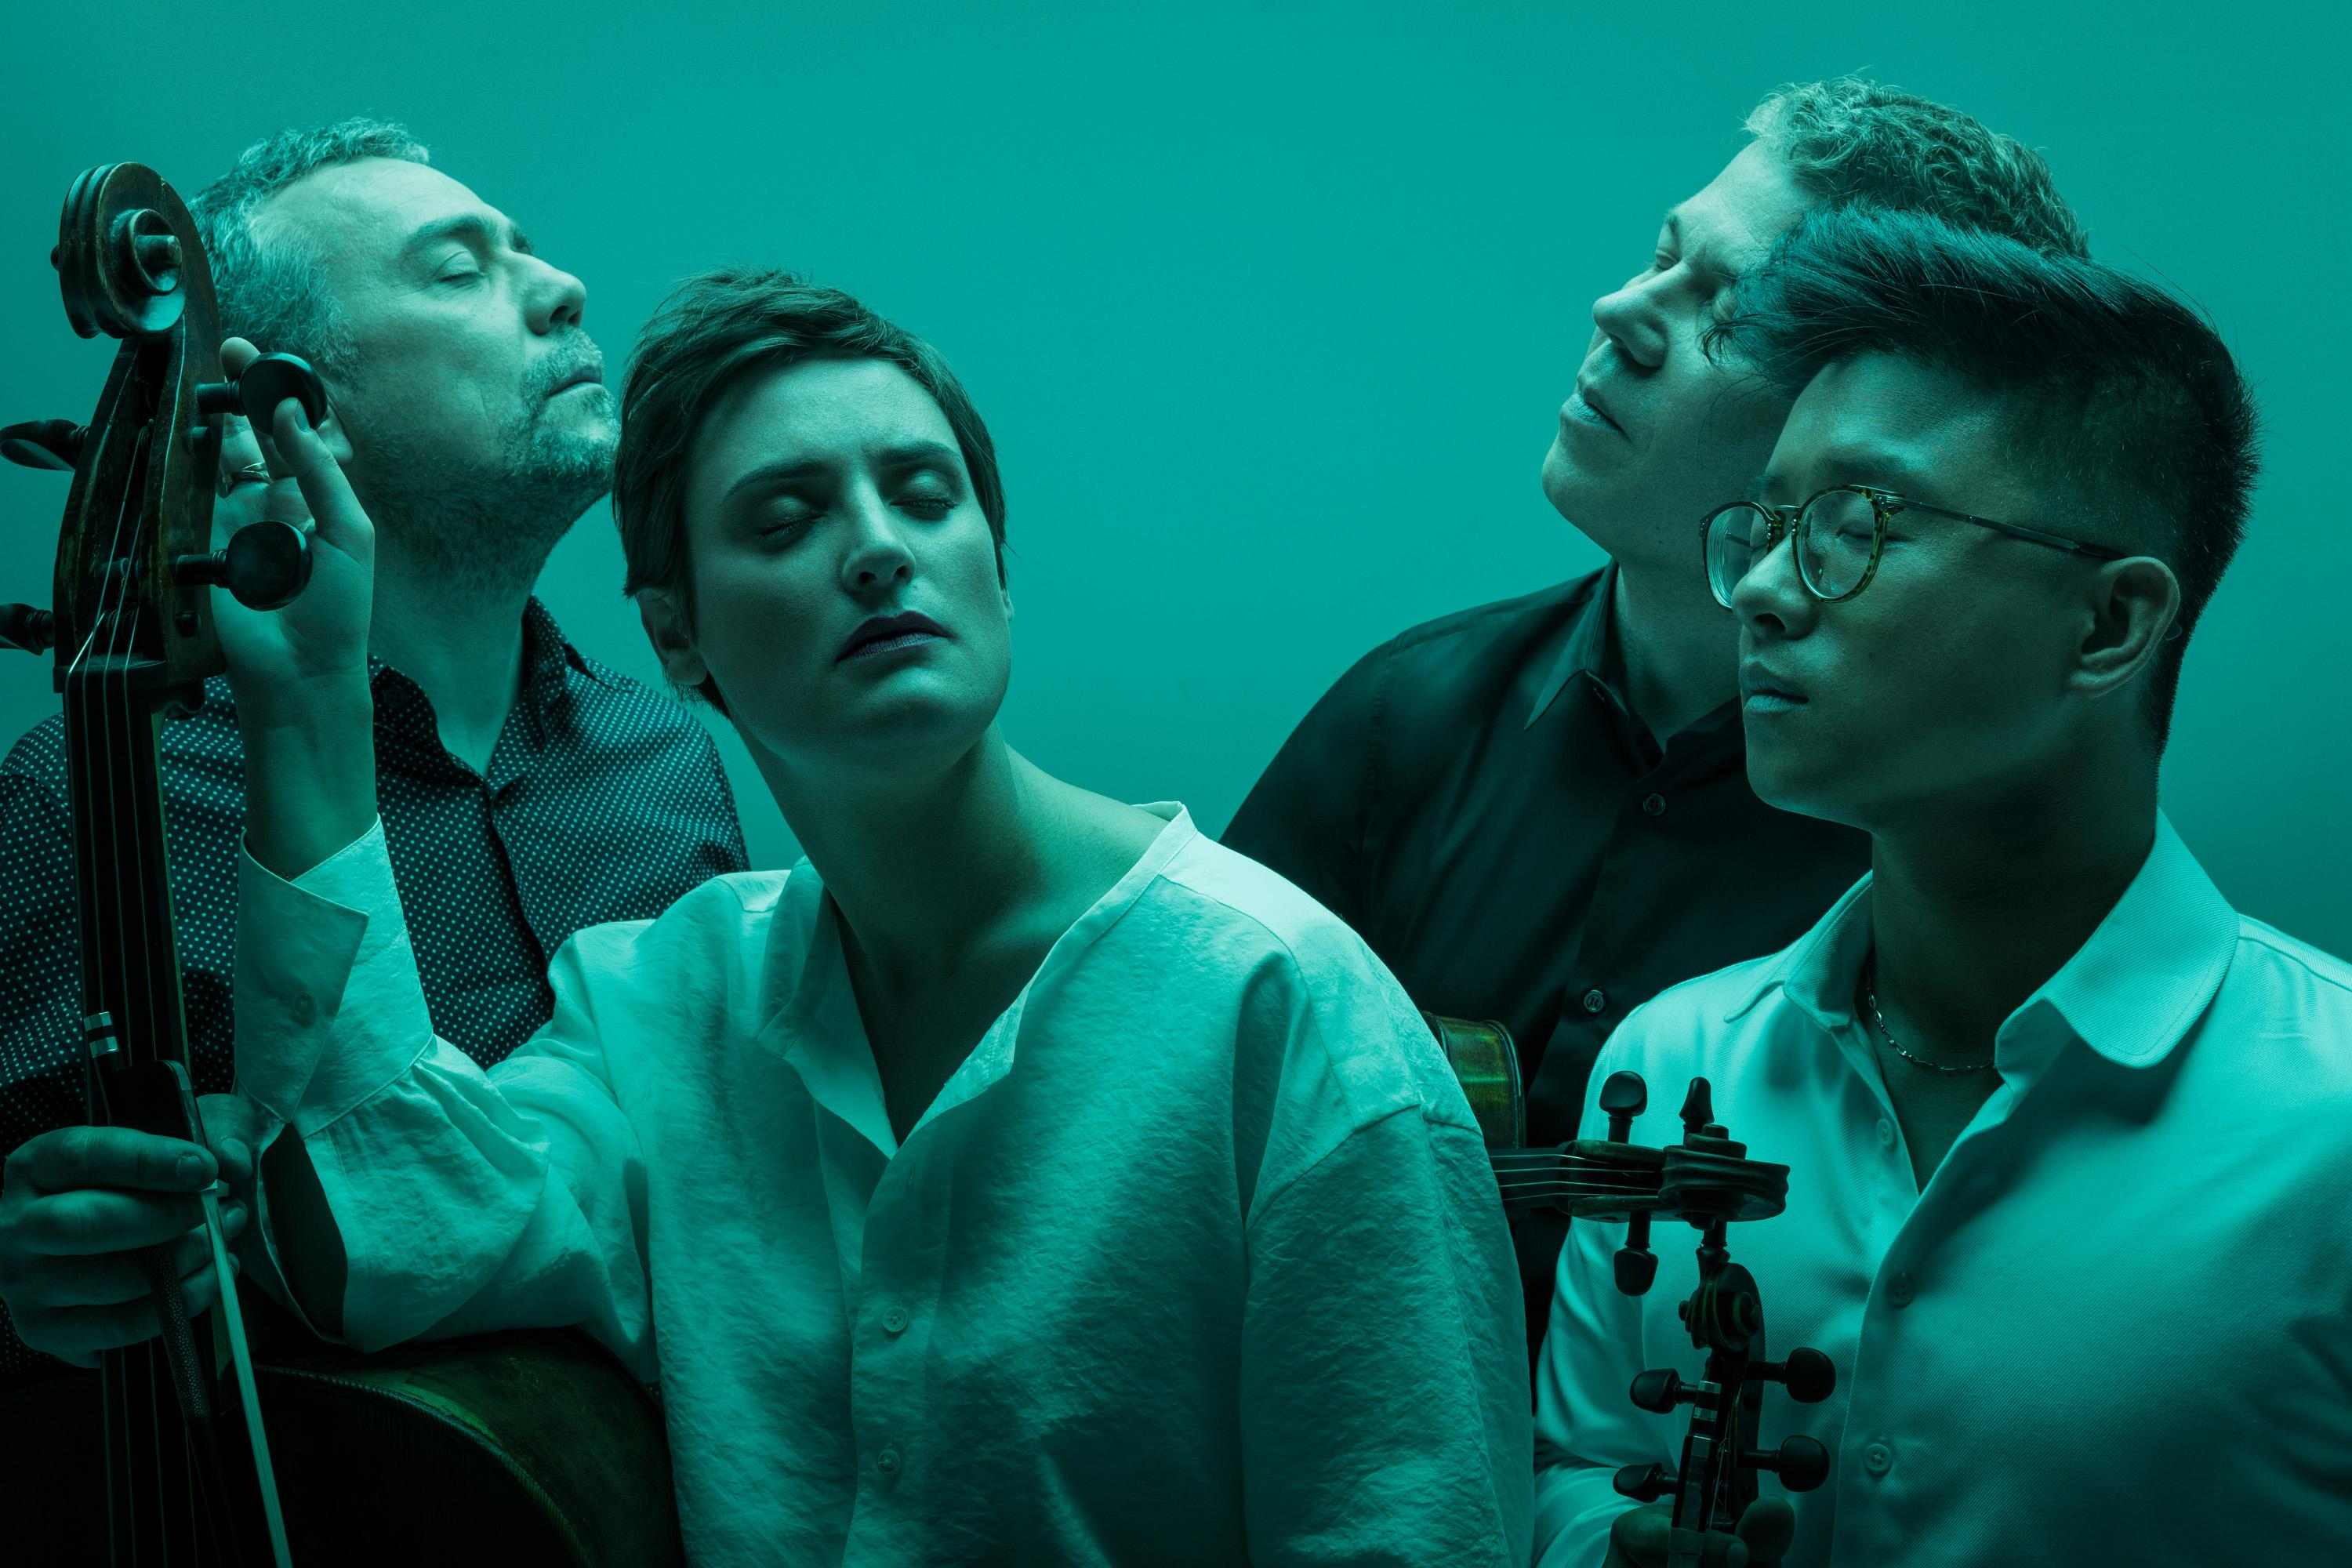 members of Quatuor Diotima posing with their instruments in blue-green lighting